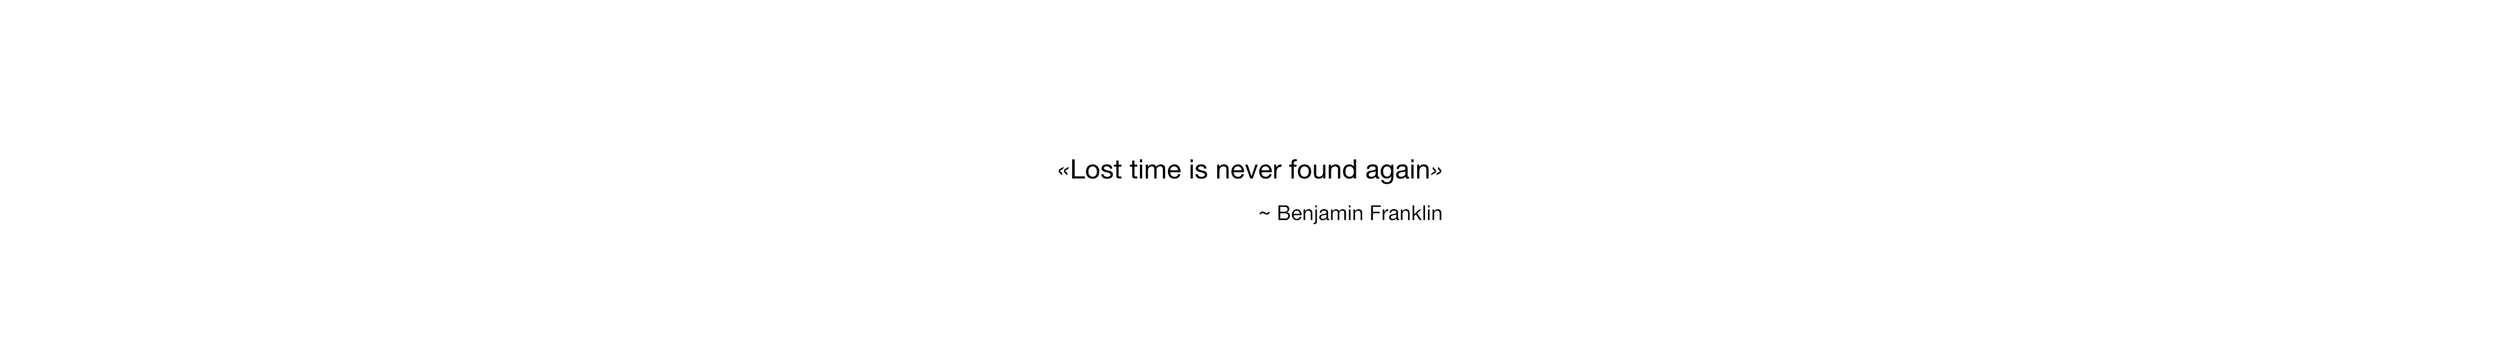 Quote Text Benjamin Franklin.png